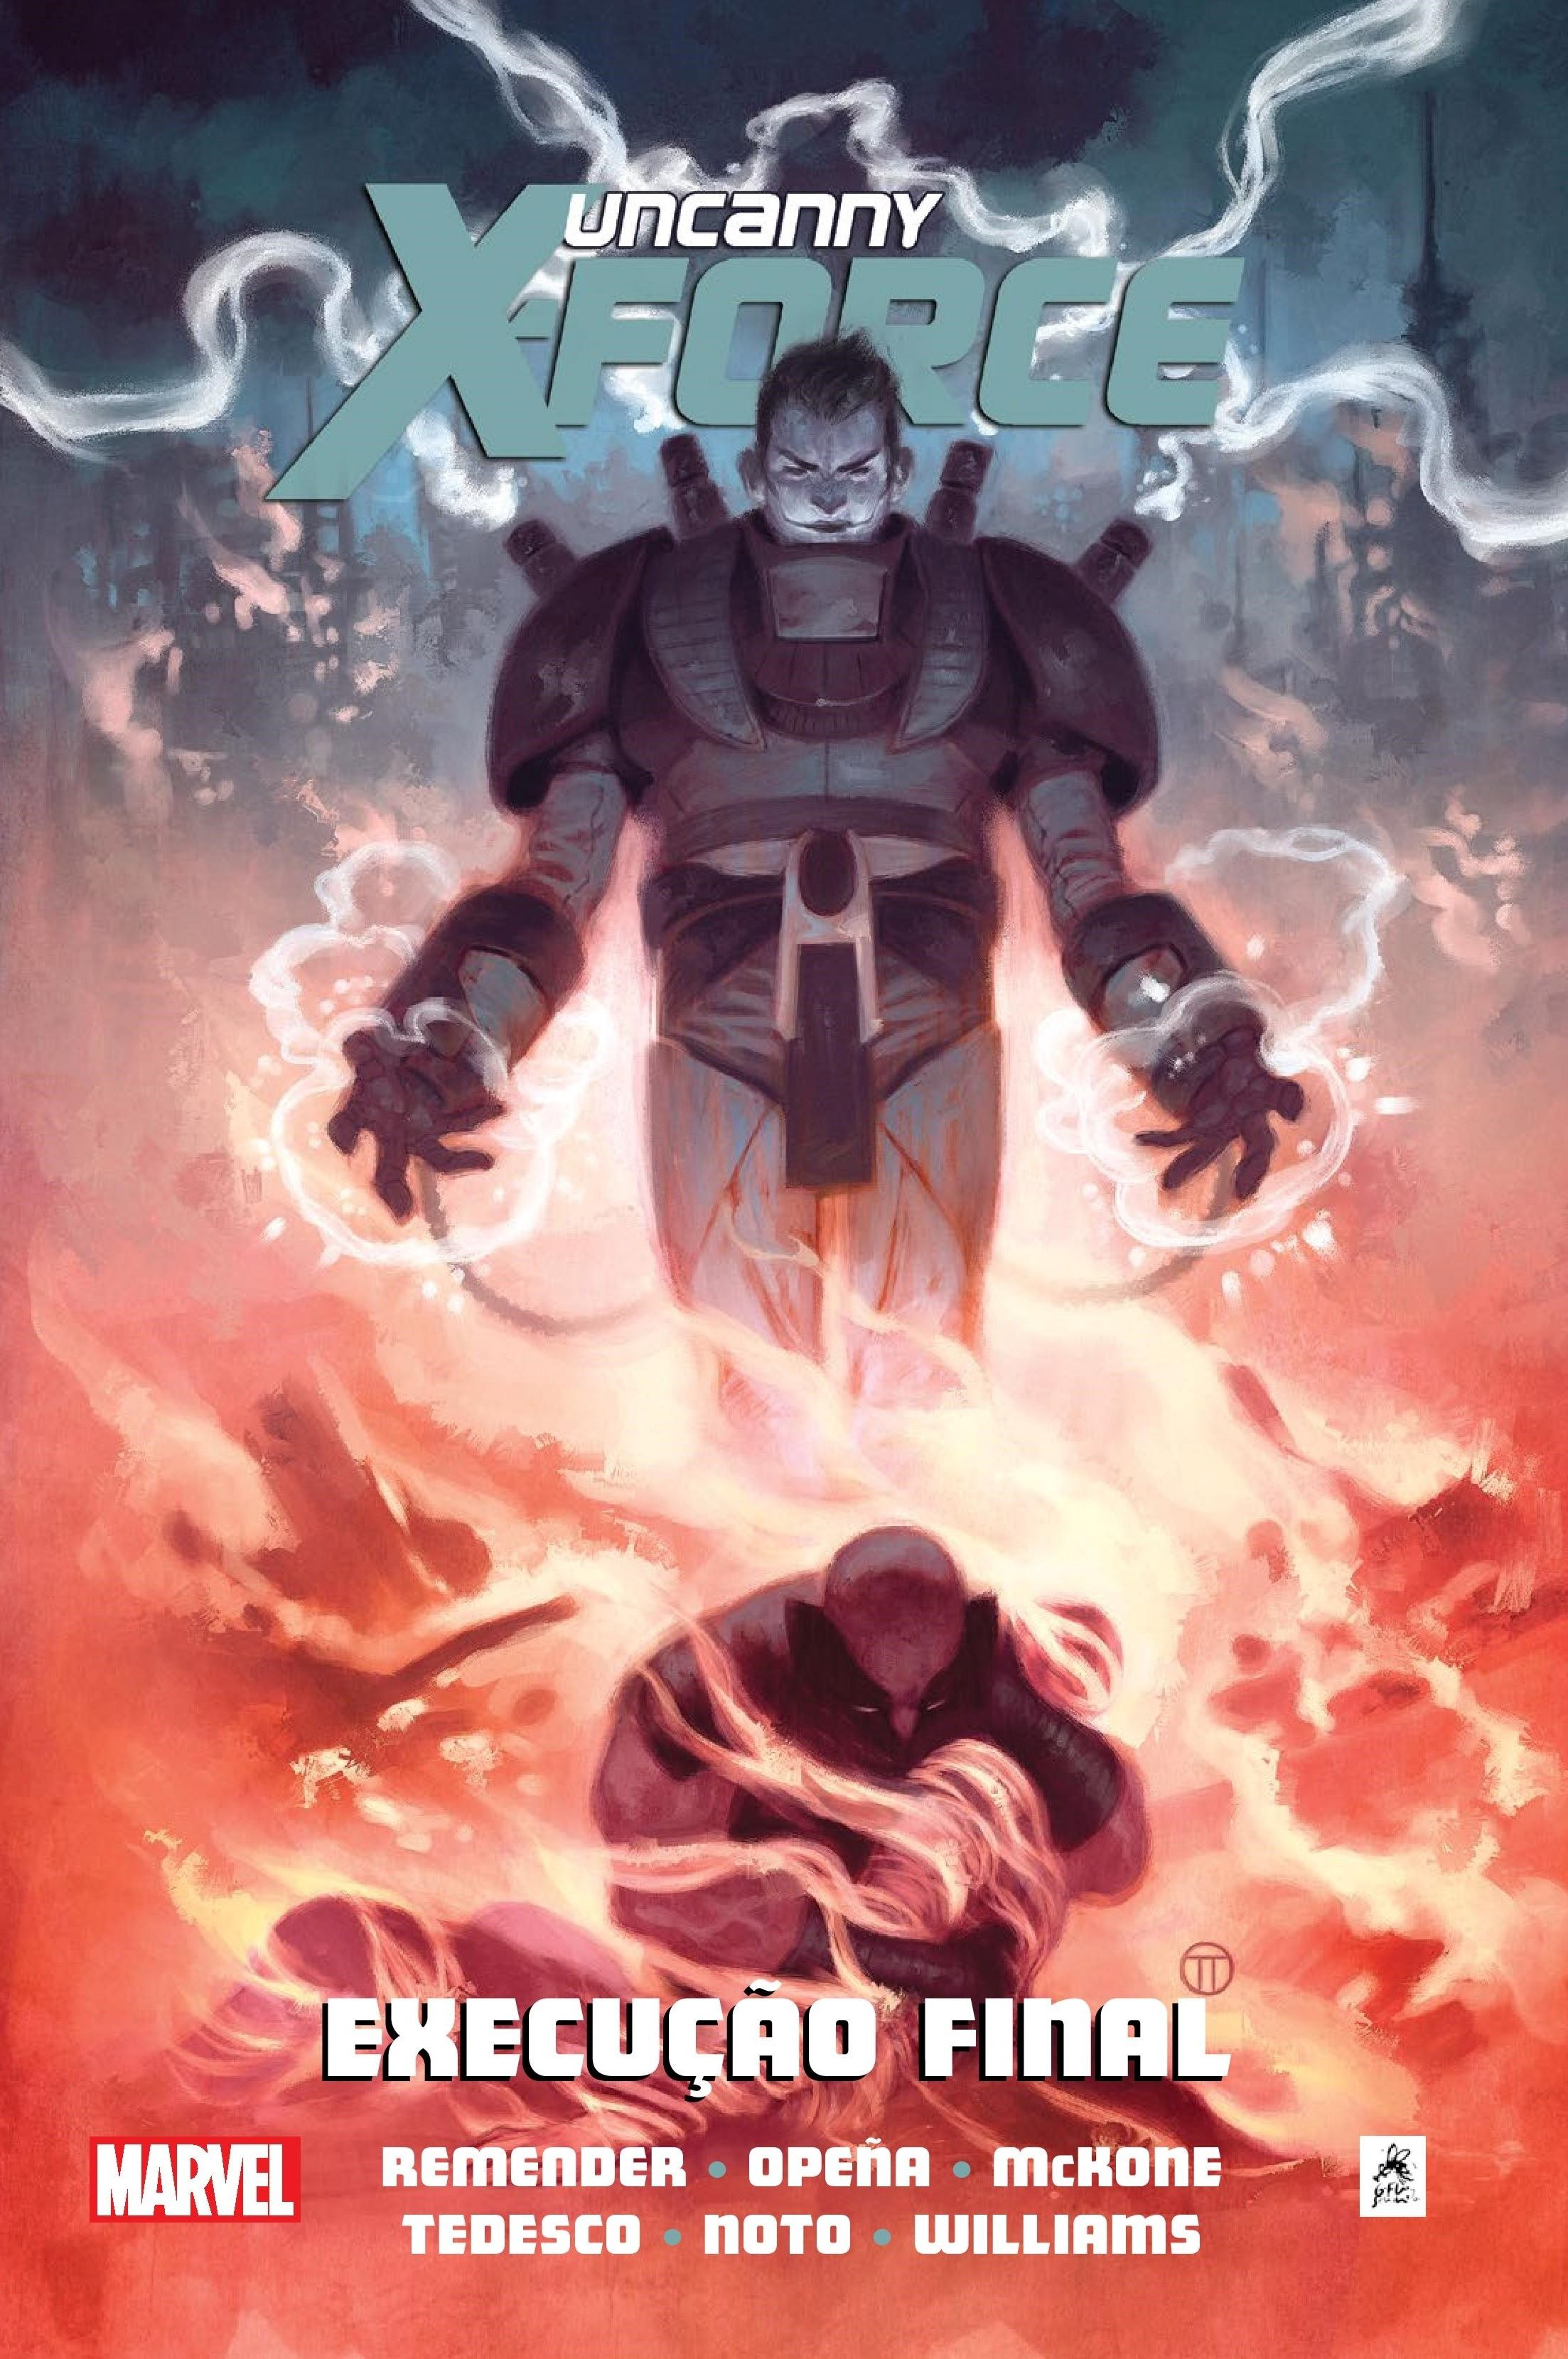 UNCANNY X-FORCE Vol. 4: EXECUÇÃO FINAL